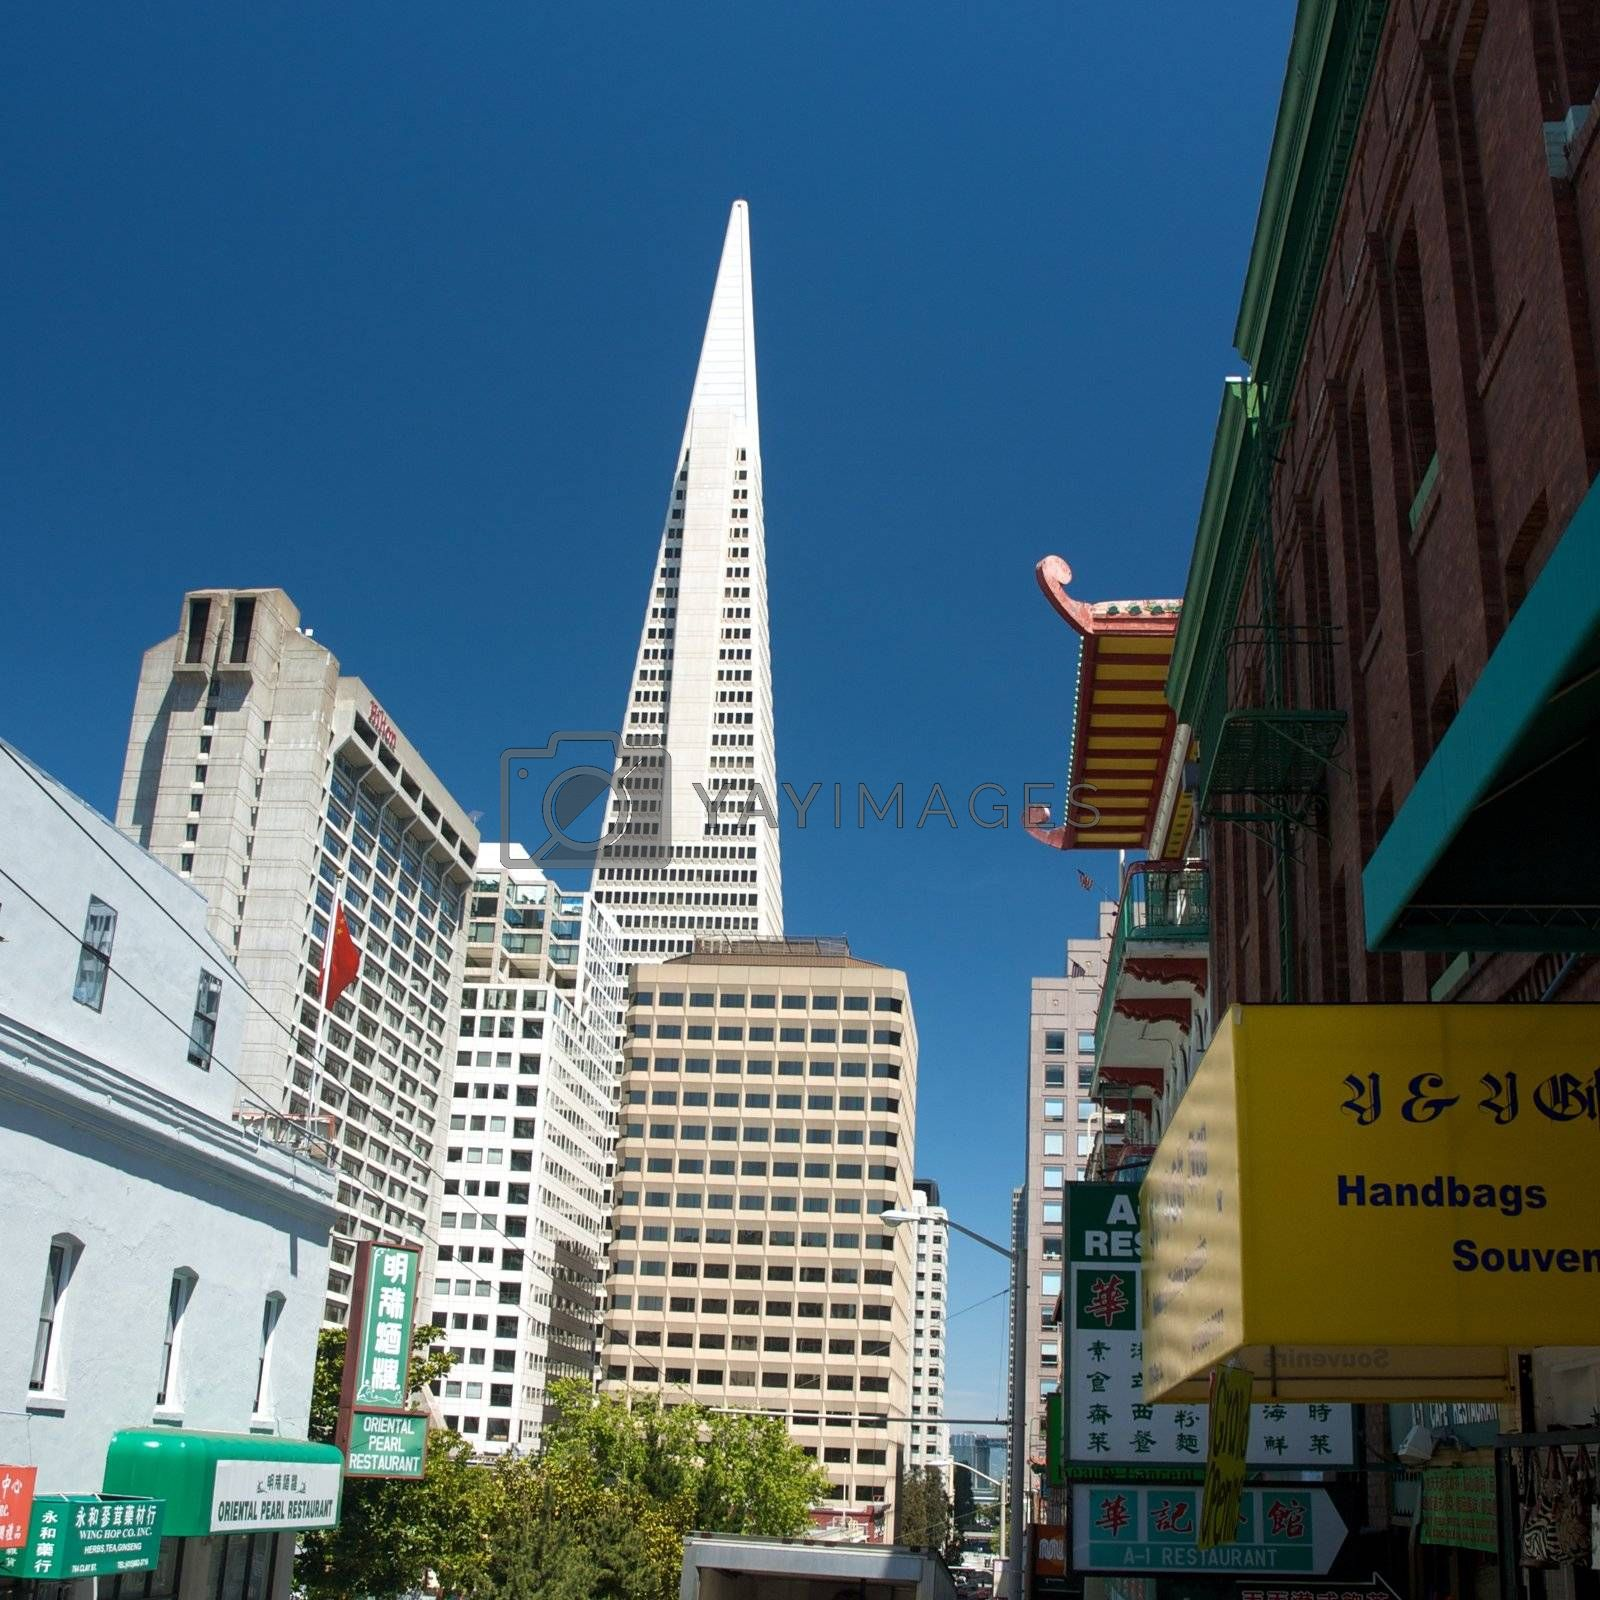 USA, California, San Francisco, Chinatown